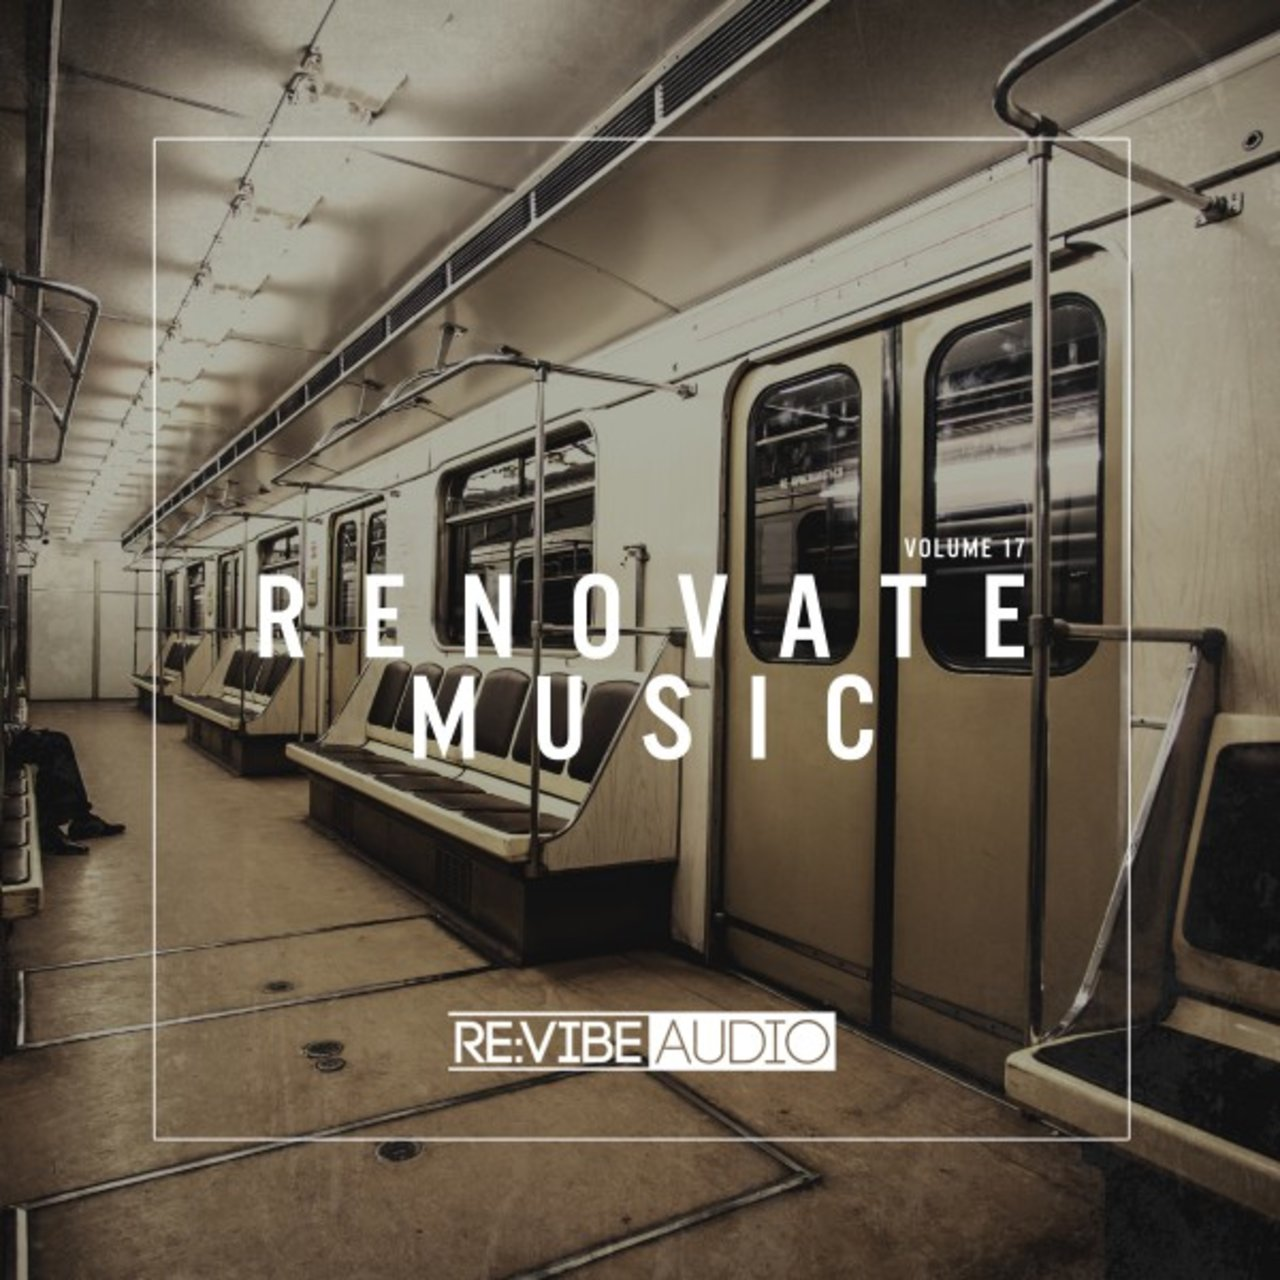 Renovate Music, Vol. 17